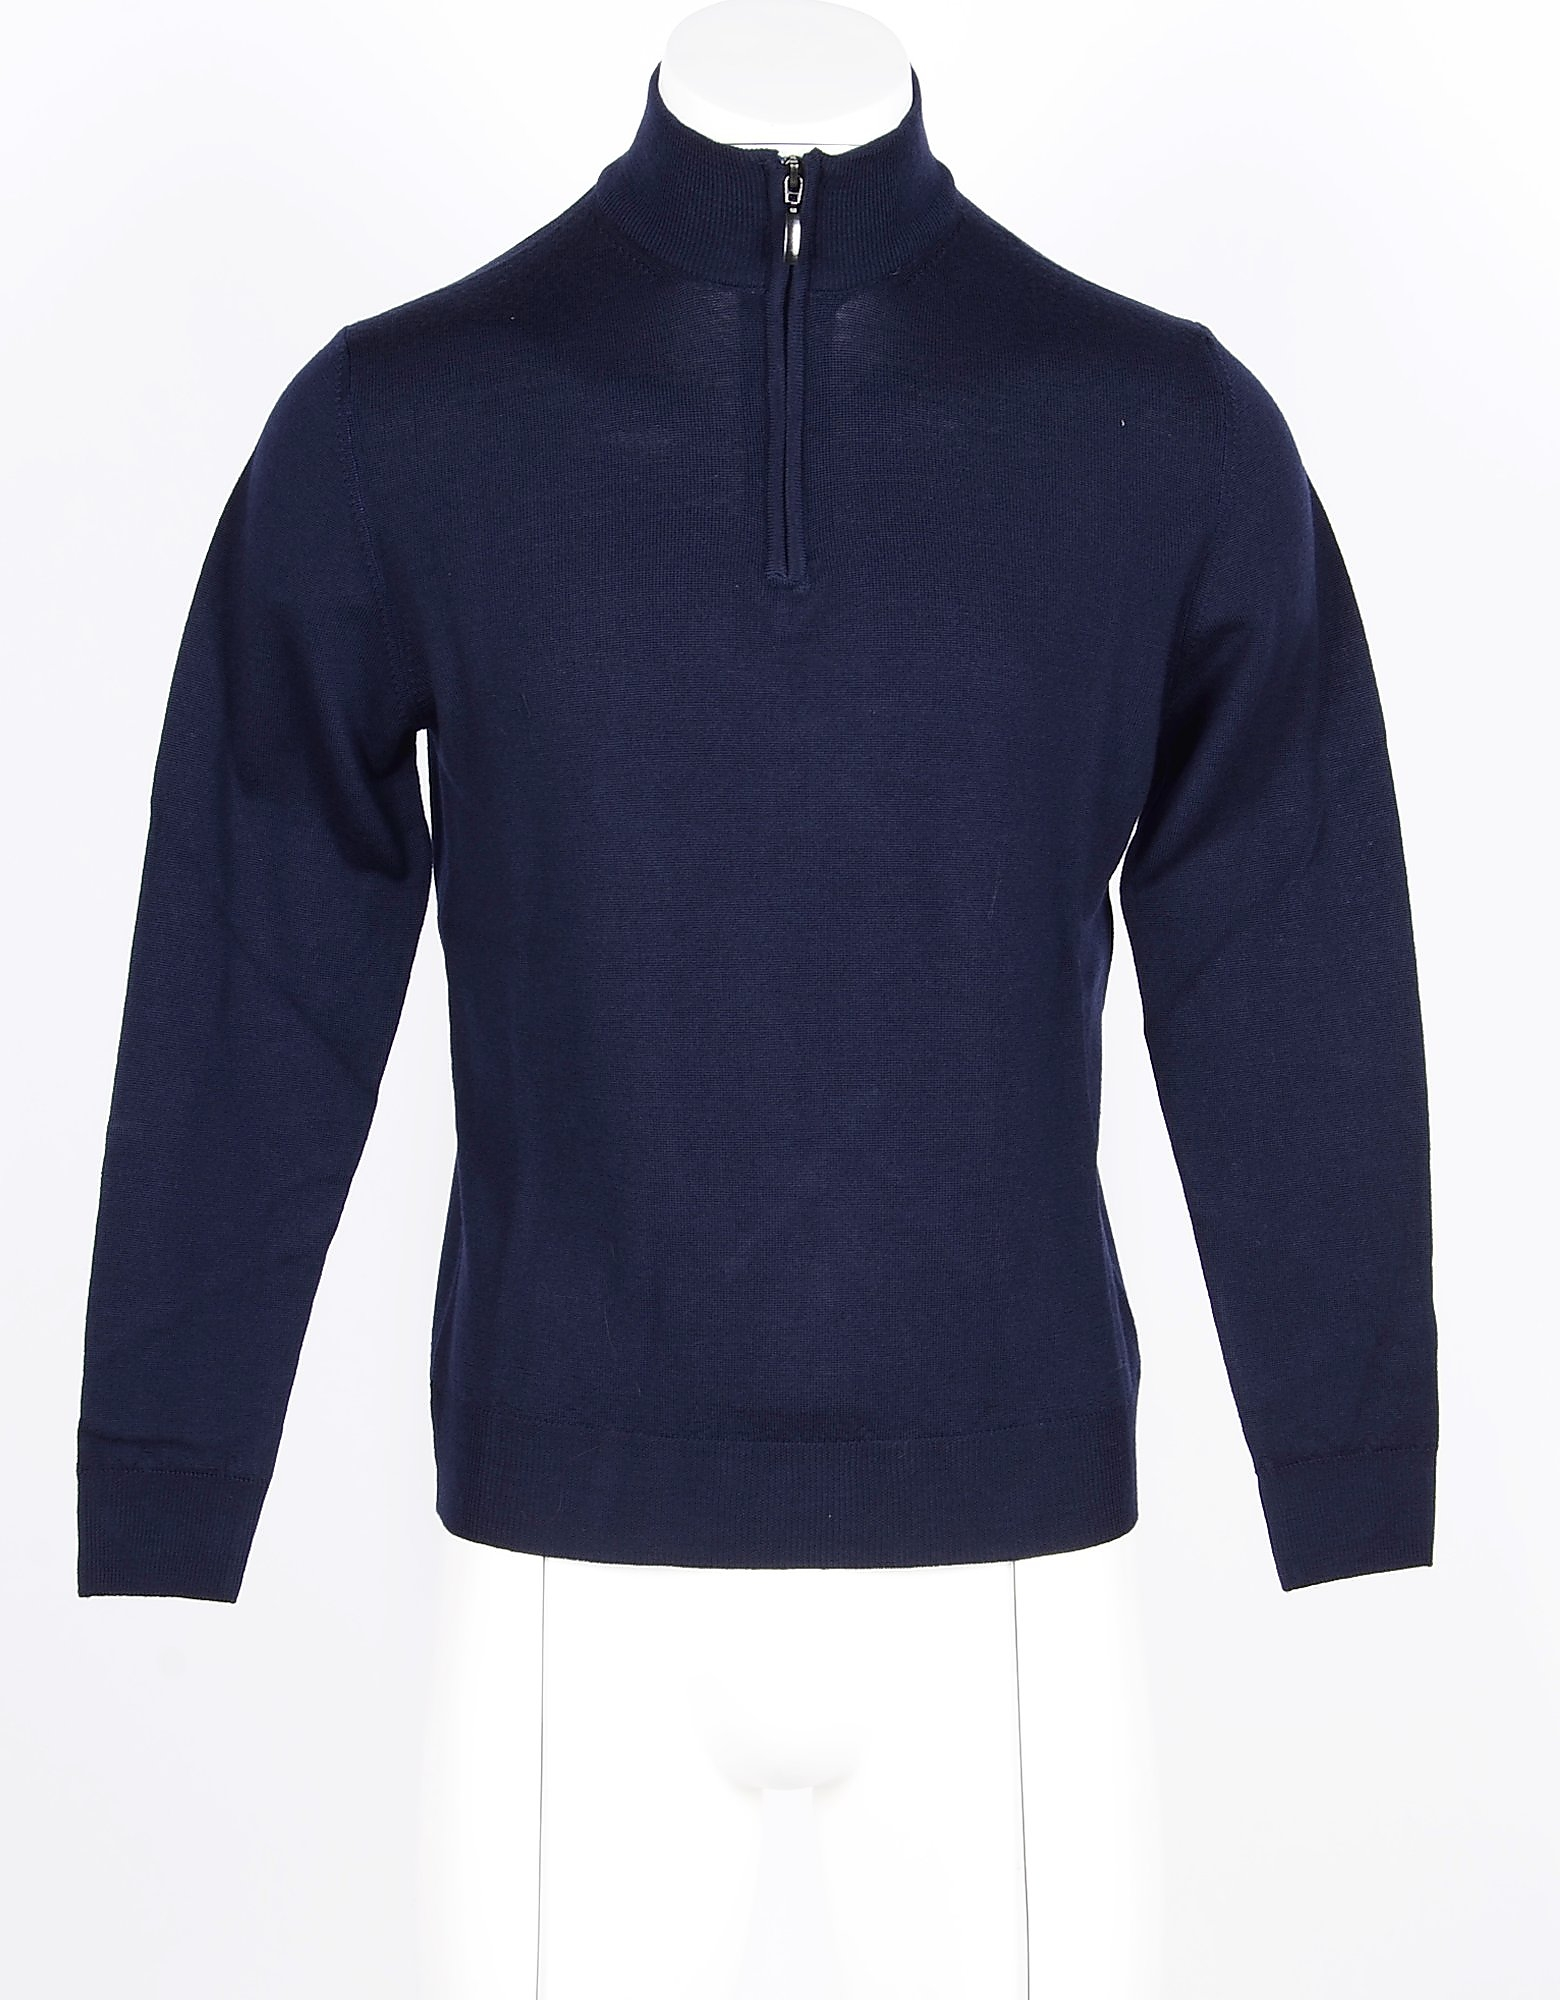 Twelve Style Division Designer Knitwear, Blue Merino Wool Men's Sweater w/Zip Collar